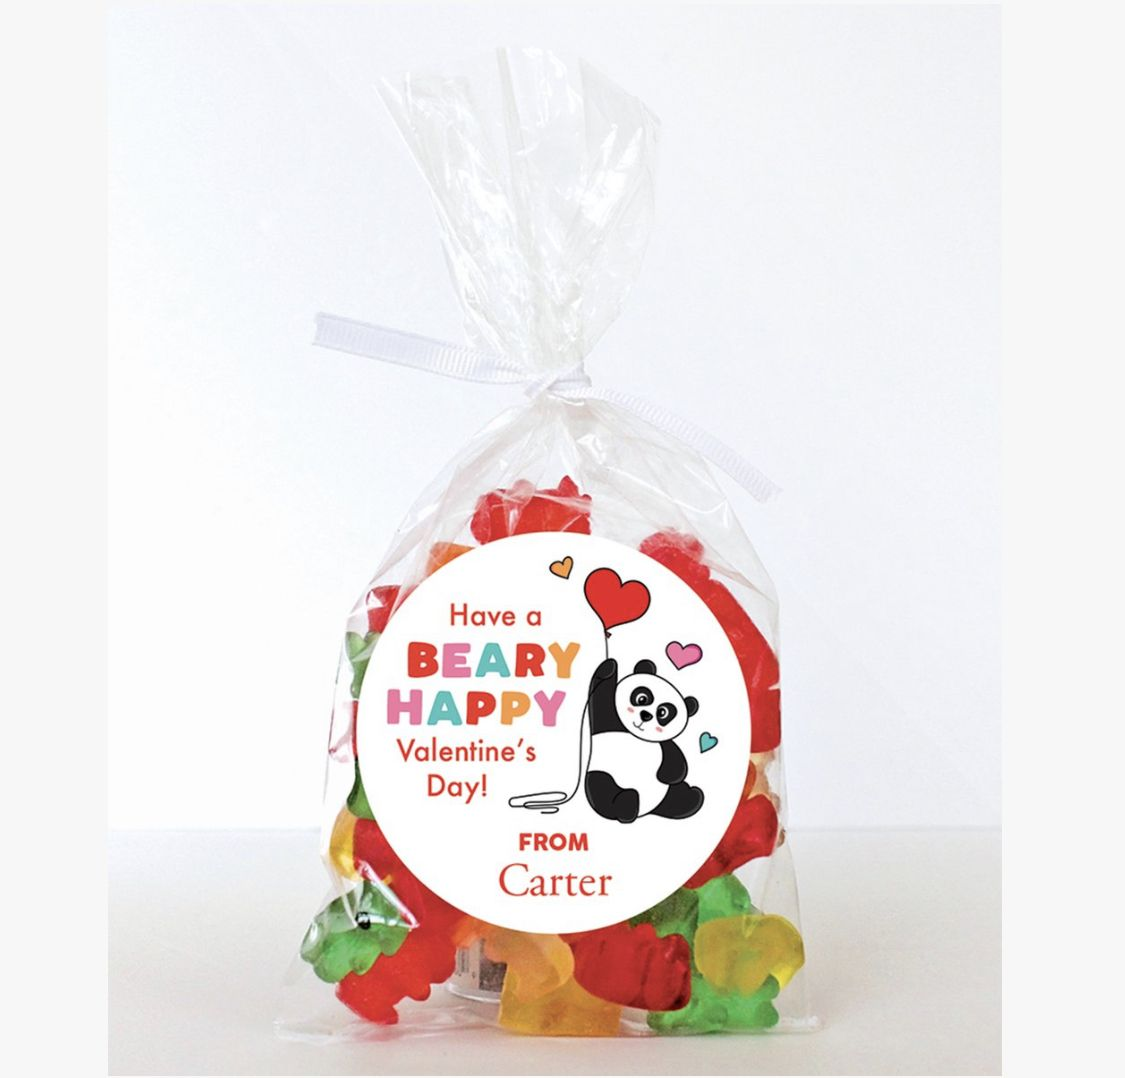 Pin On Holiday Crafts Favors